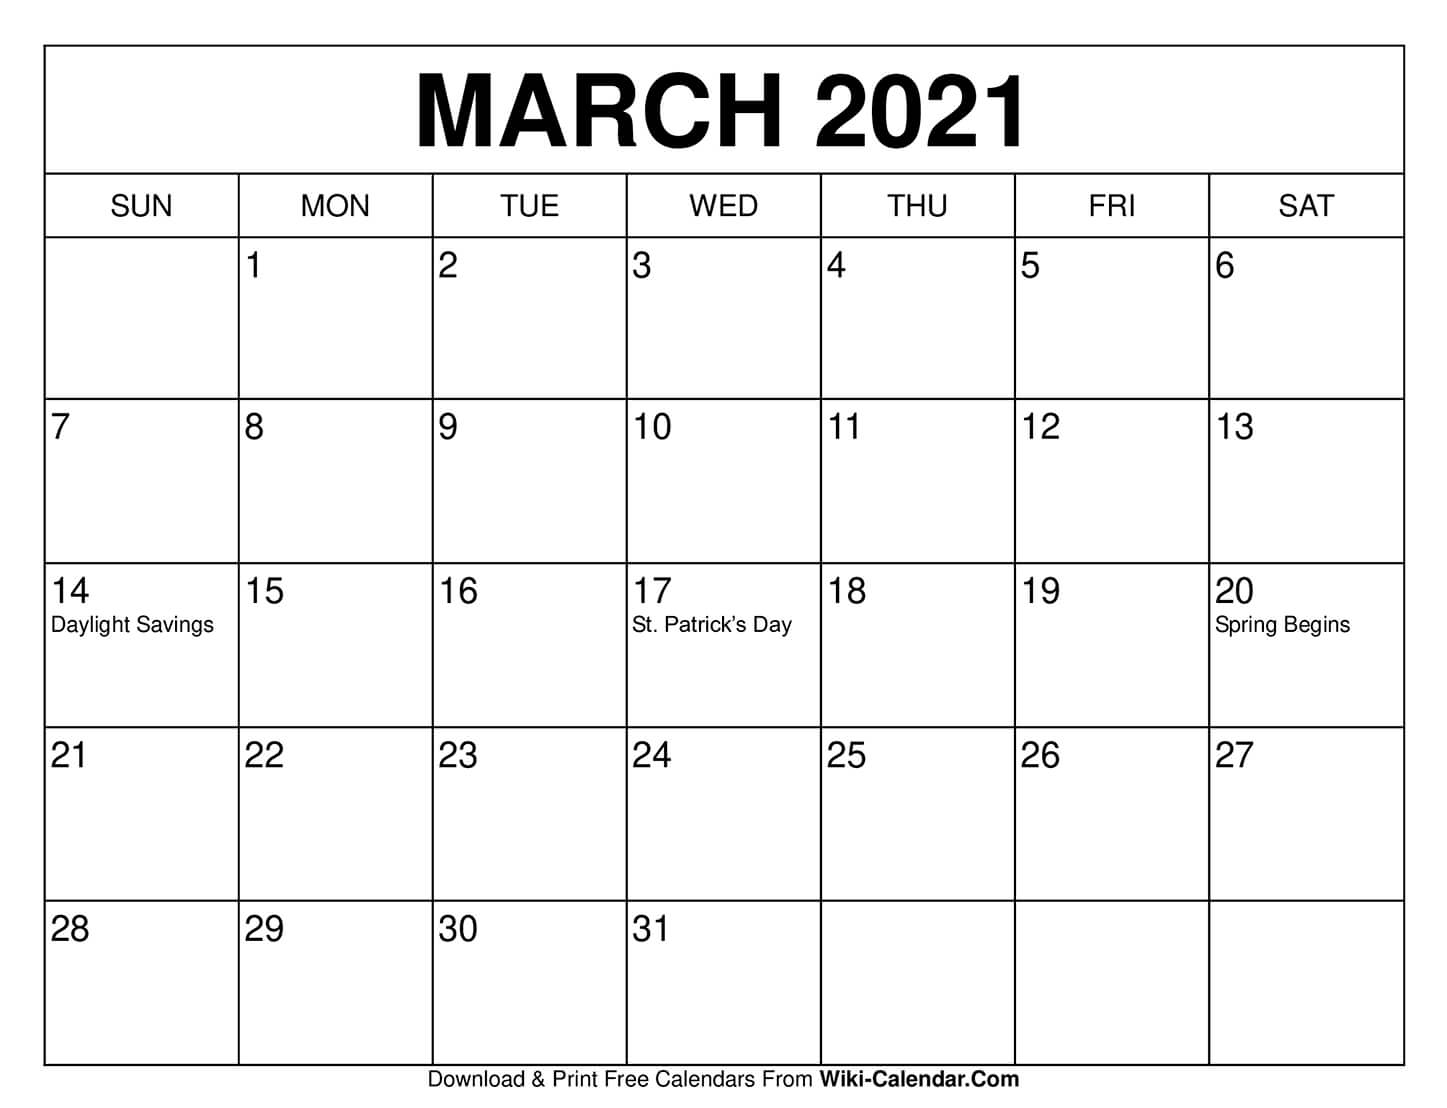 Free Printable March 2021 Calendars